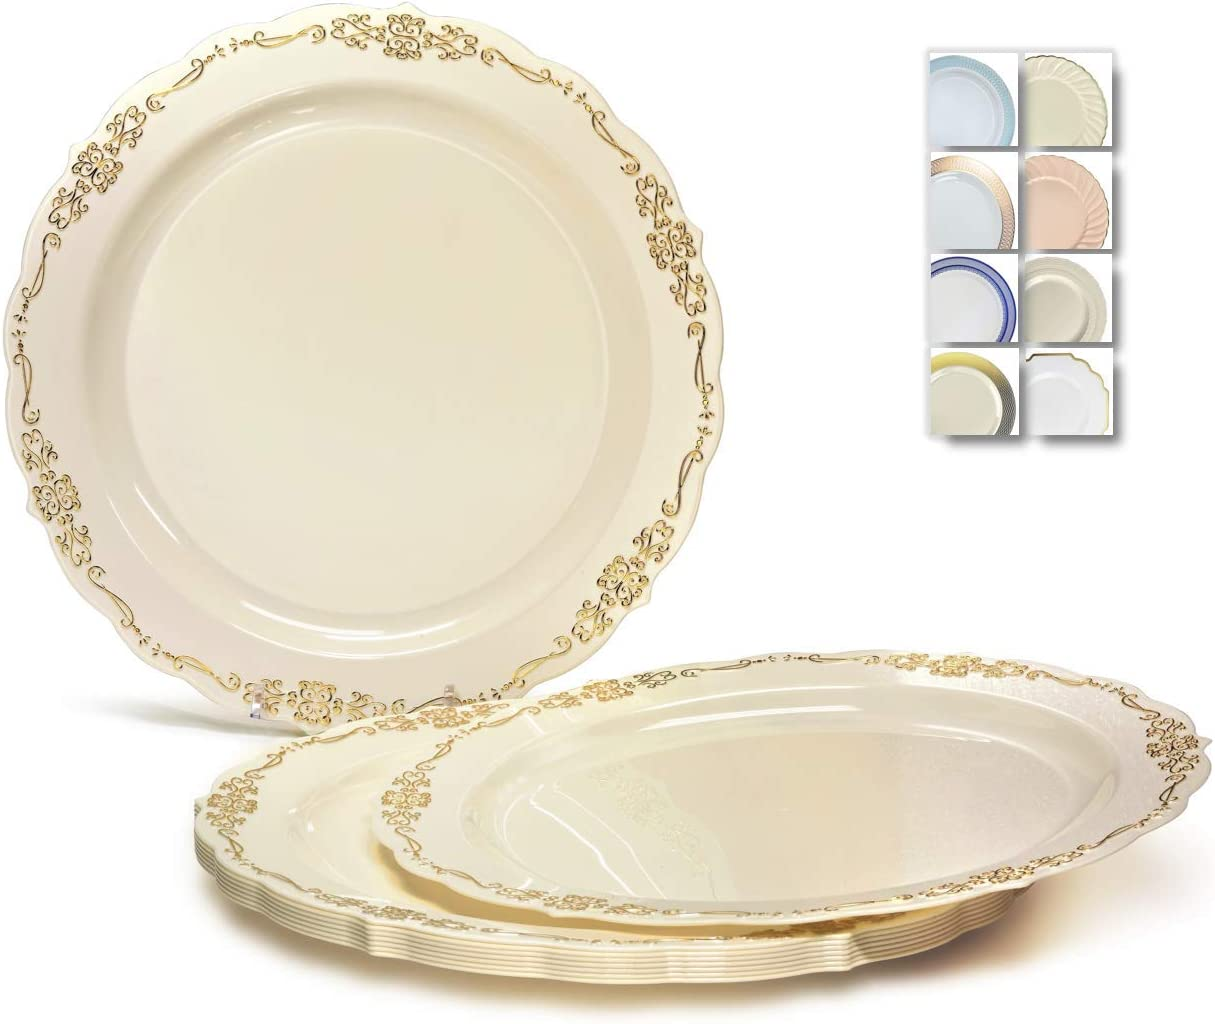 OCCASIONS 120 Plates Pack, Disposable Wedding Party Plastic Plates (7.5'' Appetizer/Dessert Plate, Verona Ivory & Gold) 61RFZOjZ3AL